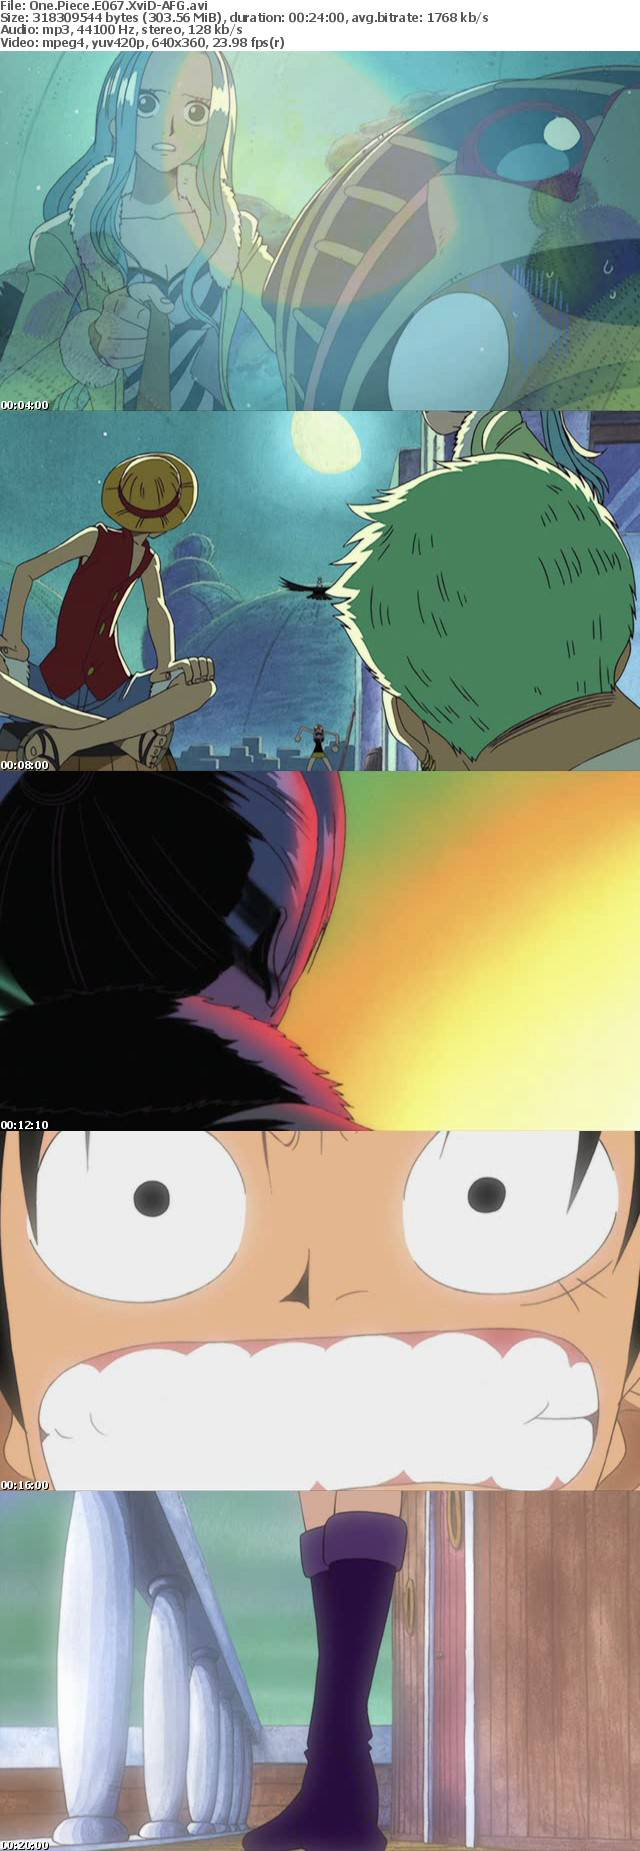 One Piece E067 XviD-AFG